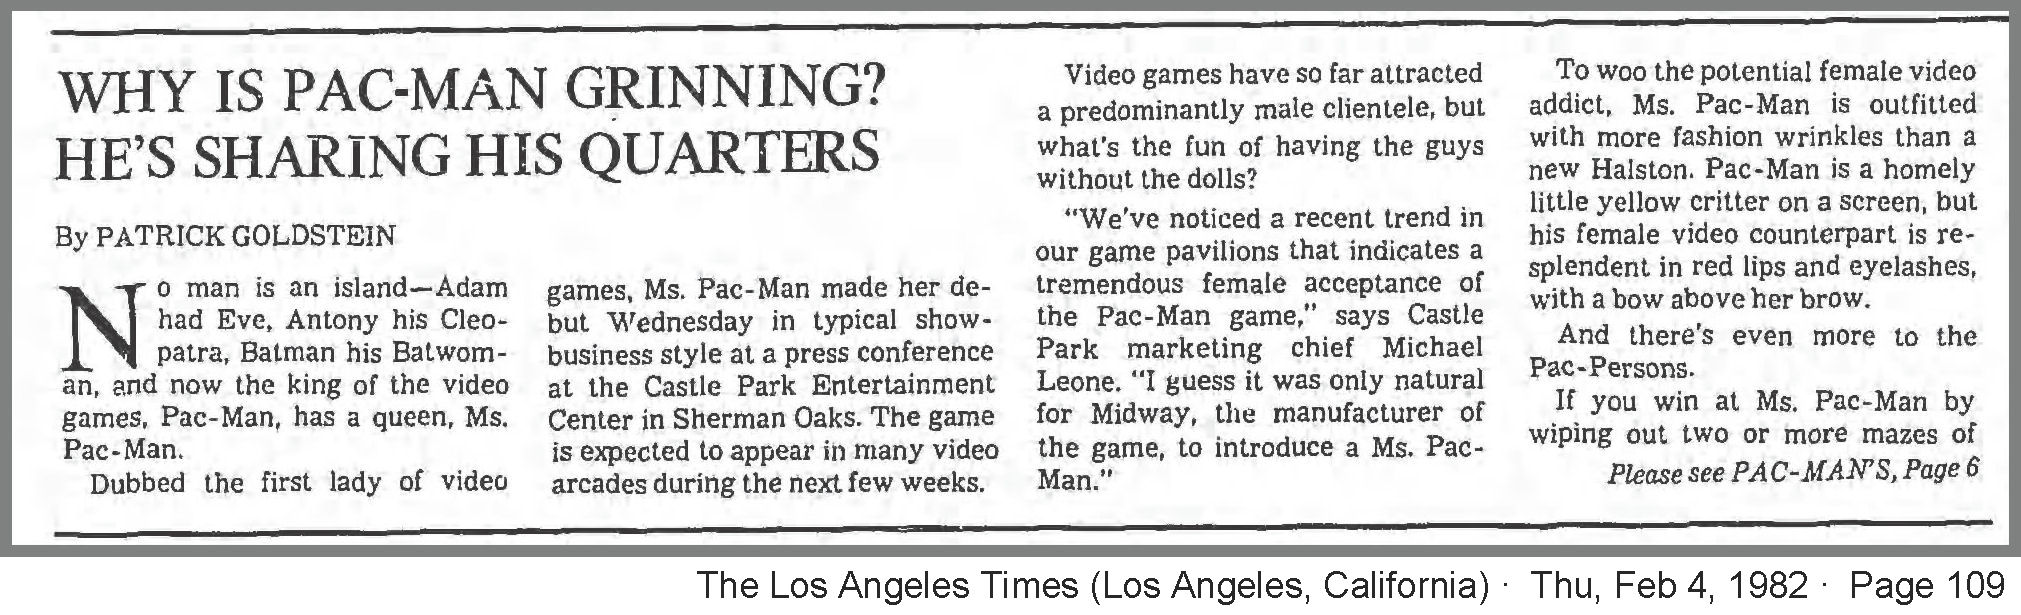 Newspaper Article Describing Ms Pac-Man Launch Date